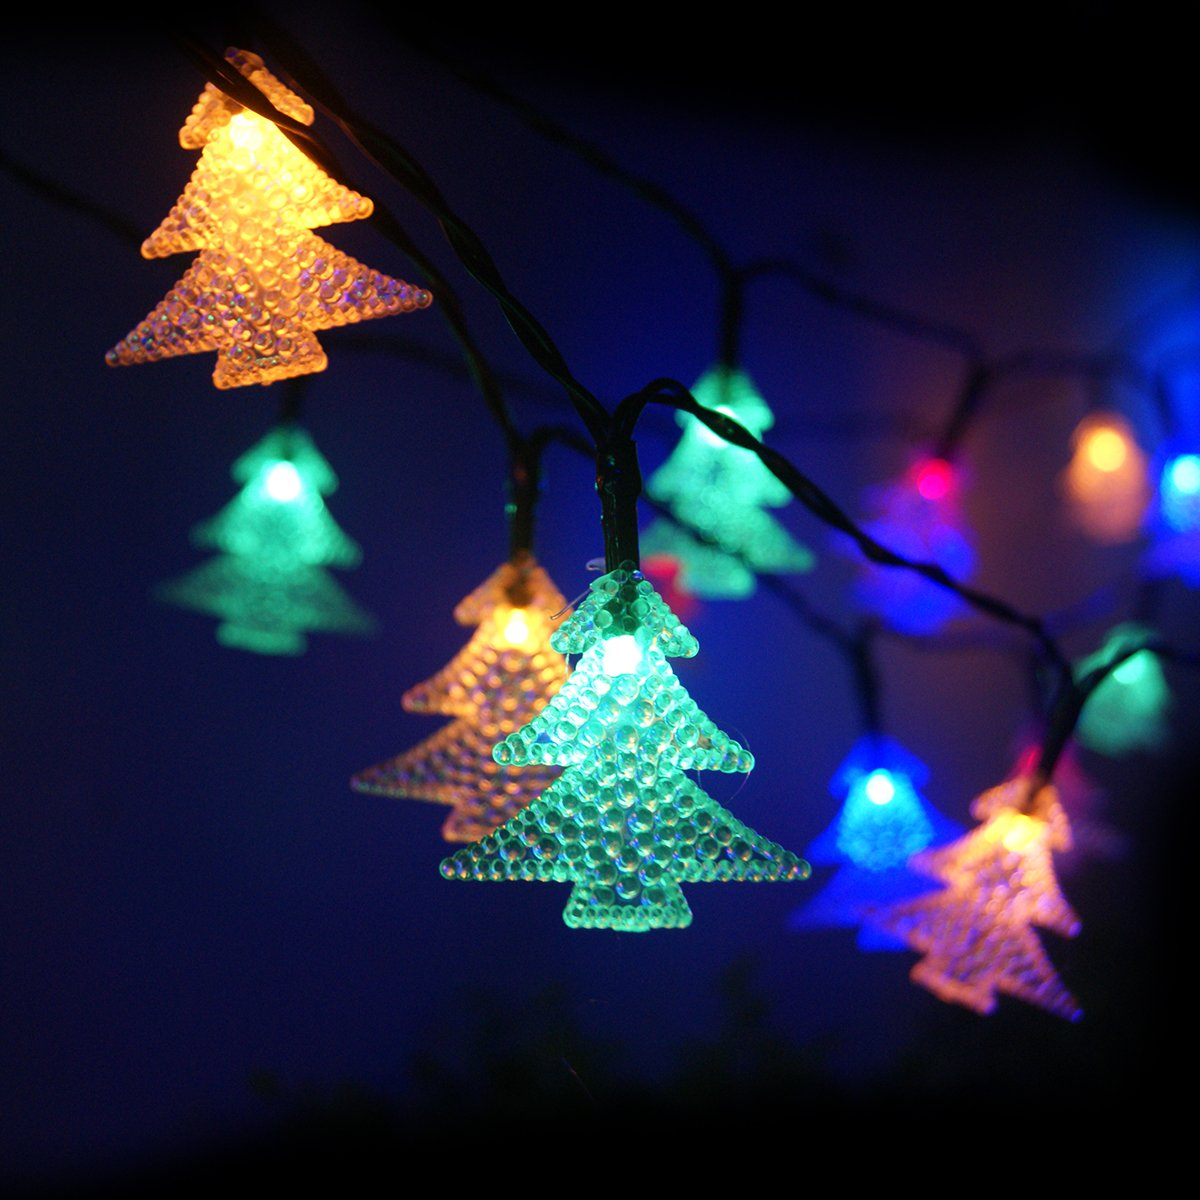 Amazoncom Outdoor Solar String Lights with 60 LEDs ECHTPower